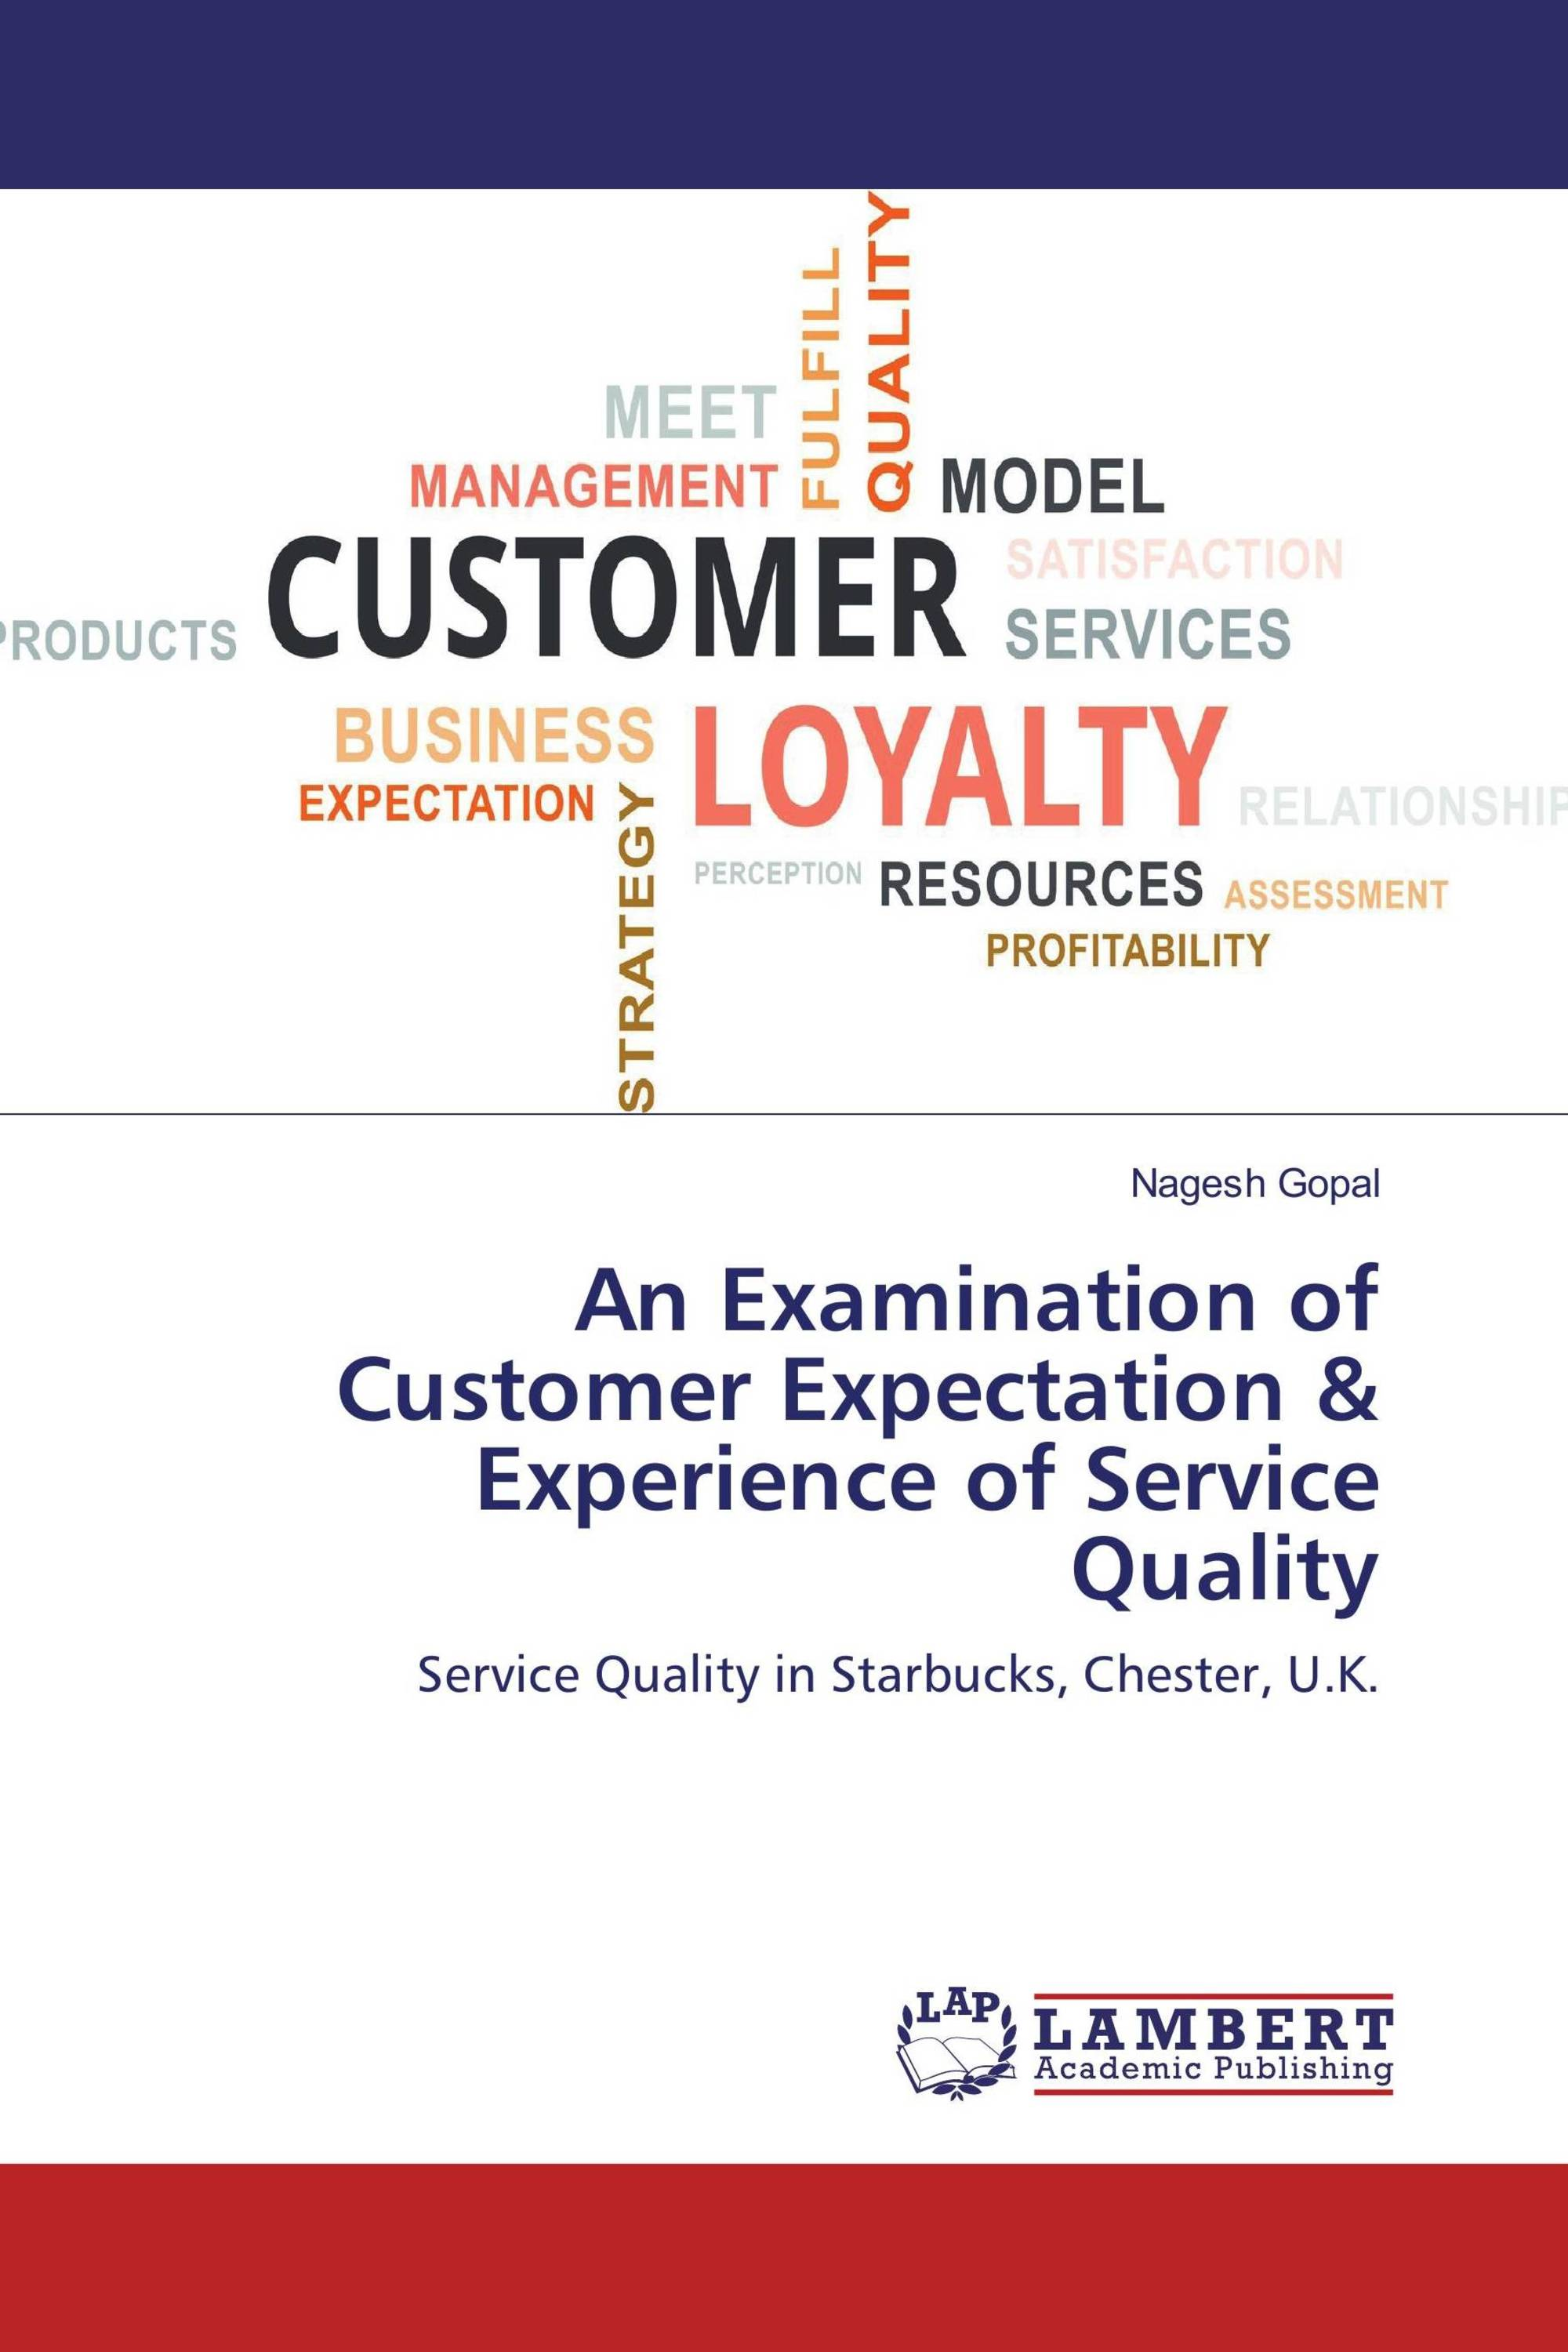 an examination of quality service cycle and its four main elements 1 the policy cycle a policy cycle is a systematic process [structure] by breaking the complexity of the process into any number of stages and sub-stages, each of which can be investigated alone or in terms of its relationship to any or all the other stages of the cycle (howlett & ramesh, 2003:13-4.